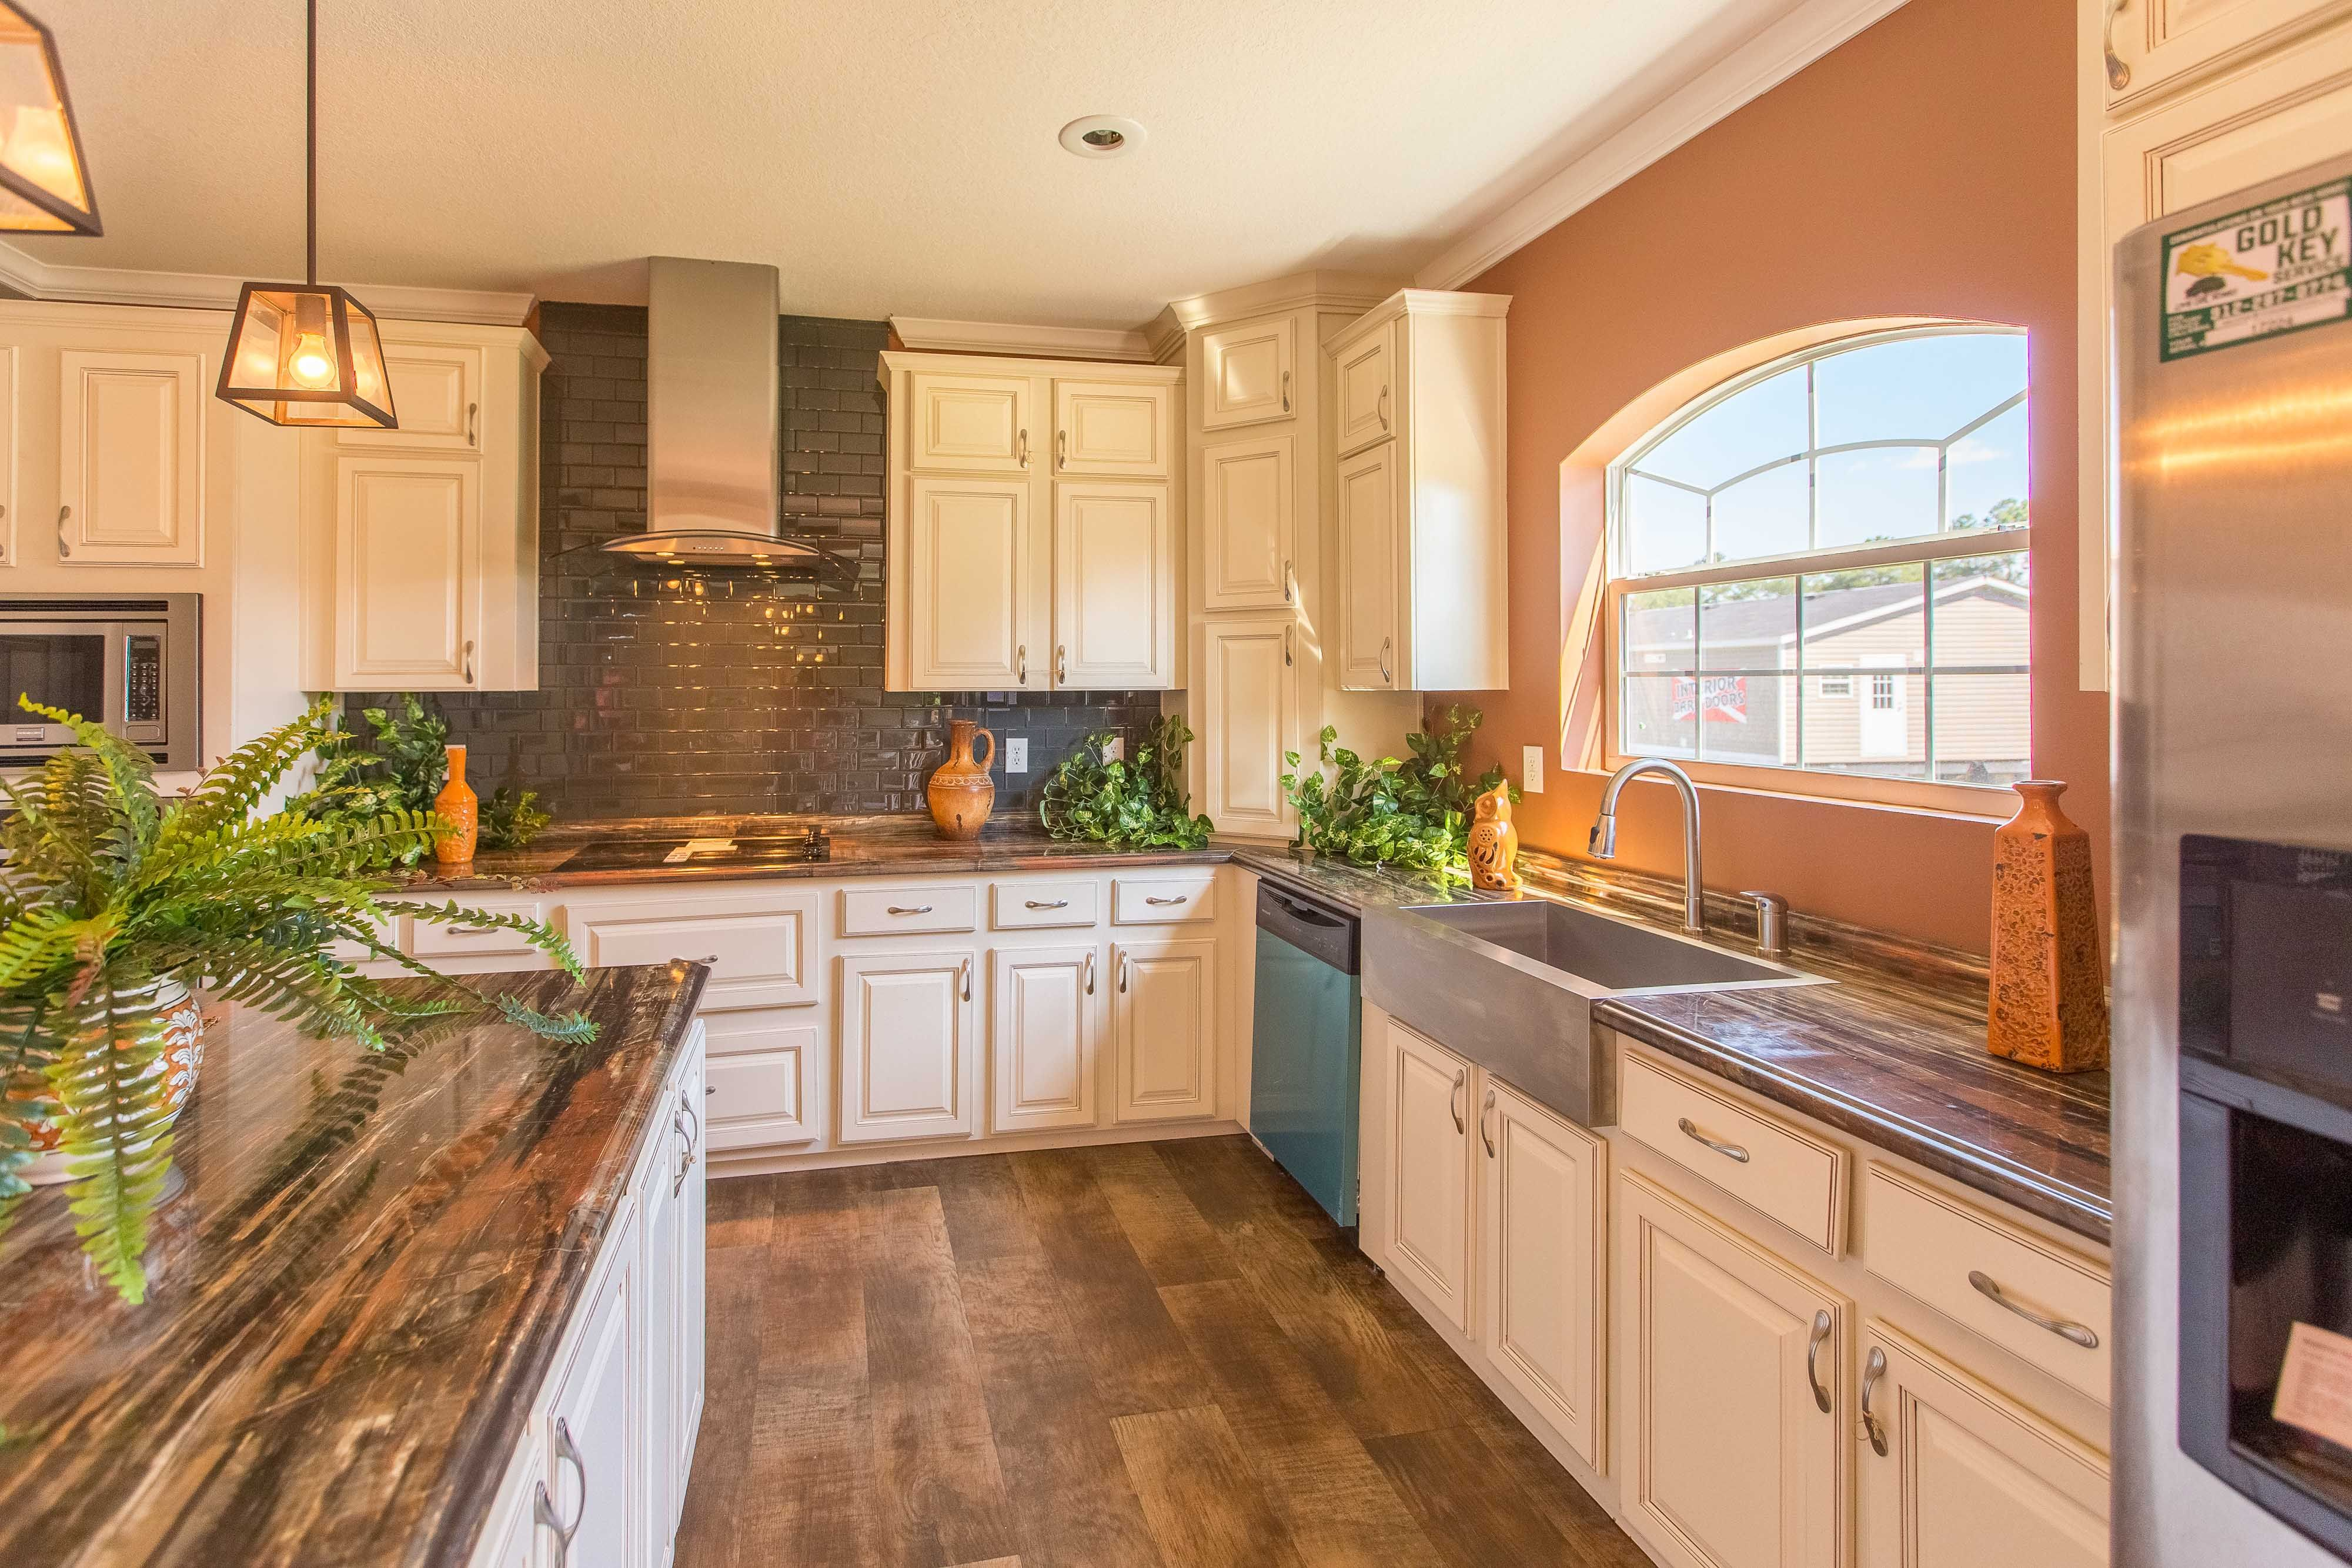 Modern Kitchen Subway Tile White Cabinets Stainless Steal Appliances Martywrighthomes Com Heritage Manufactured Home Modern Kitchen Subway Tile Home